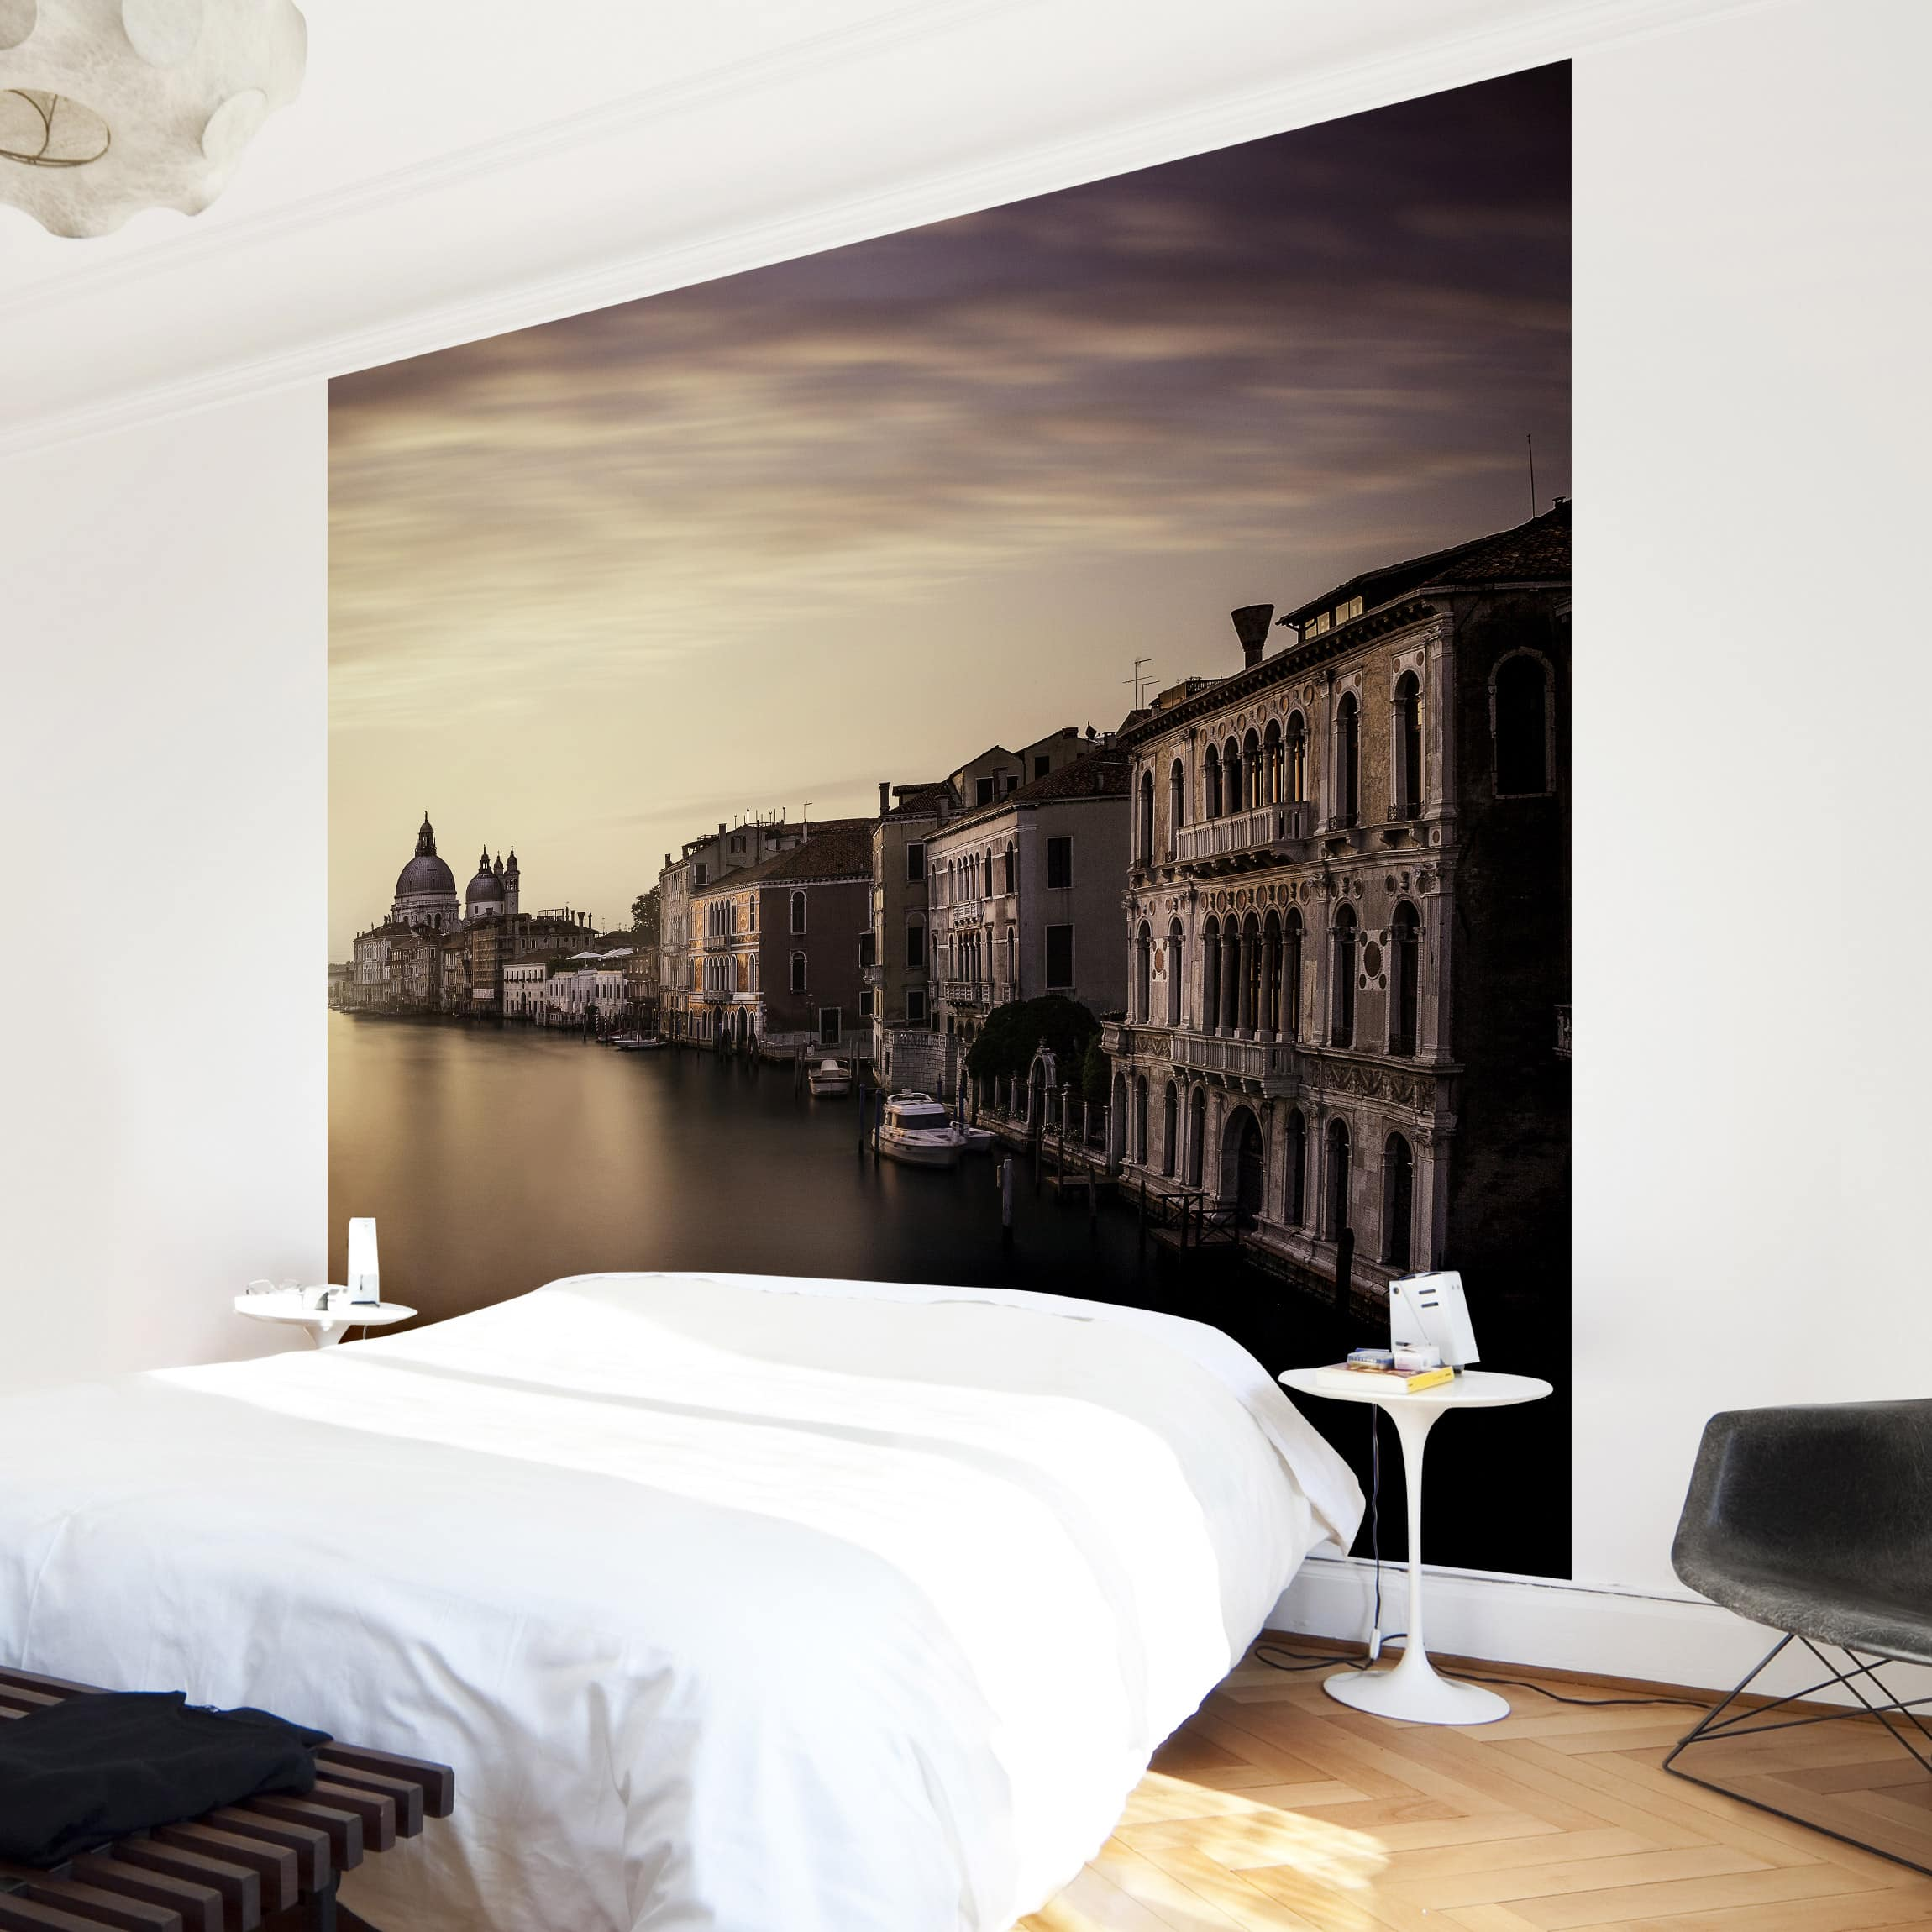 tapete selbstklebend abendstimmung in venedig wandbild quadratisch. Black Bedroom Furniture Sets. Home Design Ideas